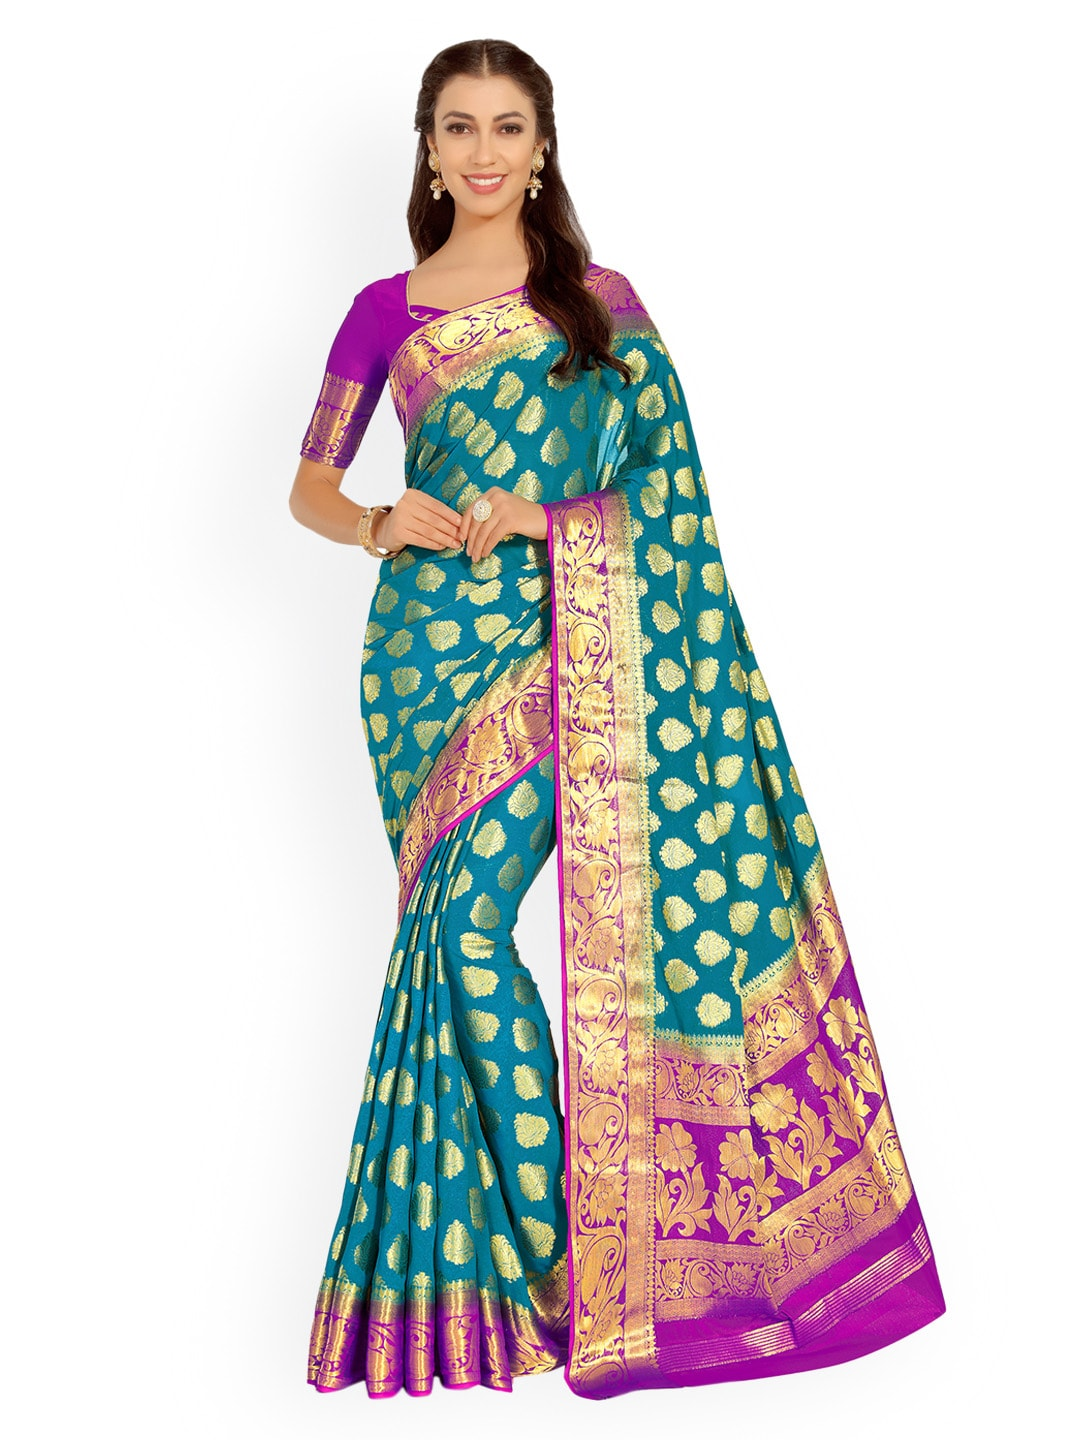 6e3a9c4d81d3 Turquoise Blue Traditional Saree - Buy Turquoise Blue Traditional Saree  online in India